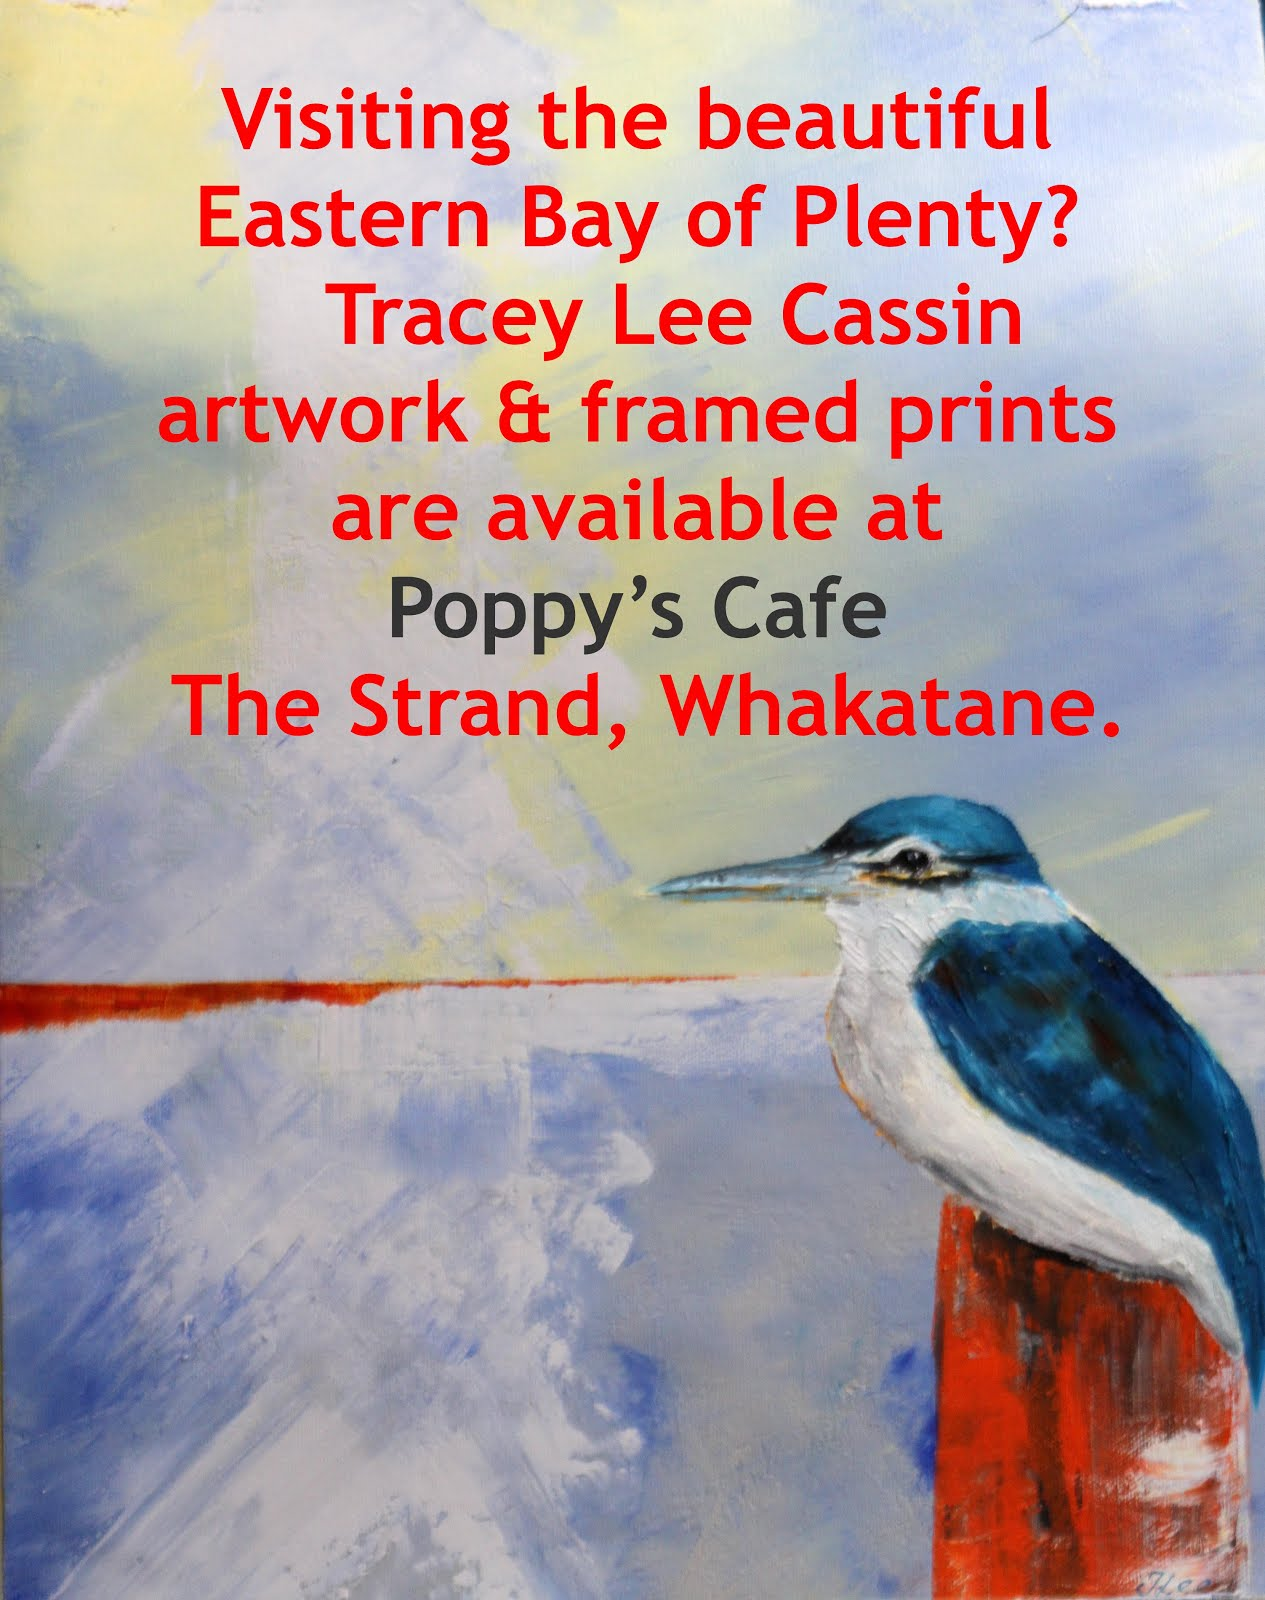 Click for directions to Poppy's Cafe...